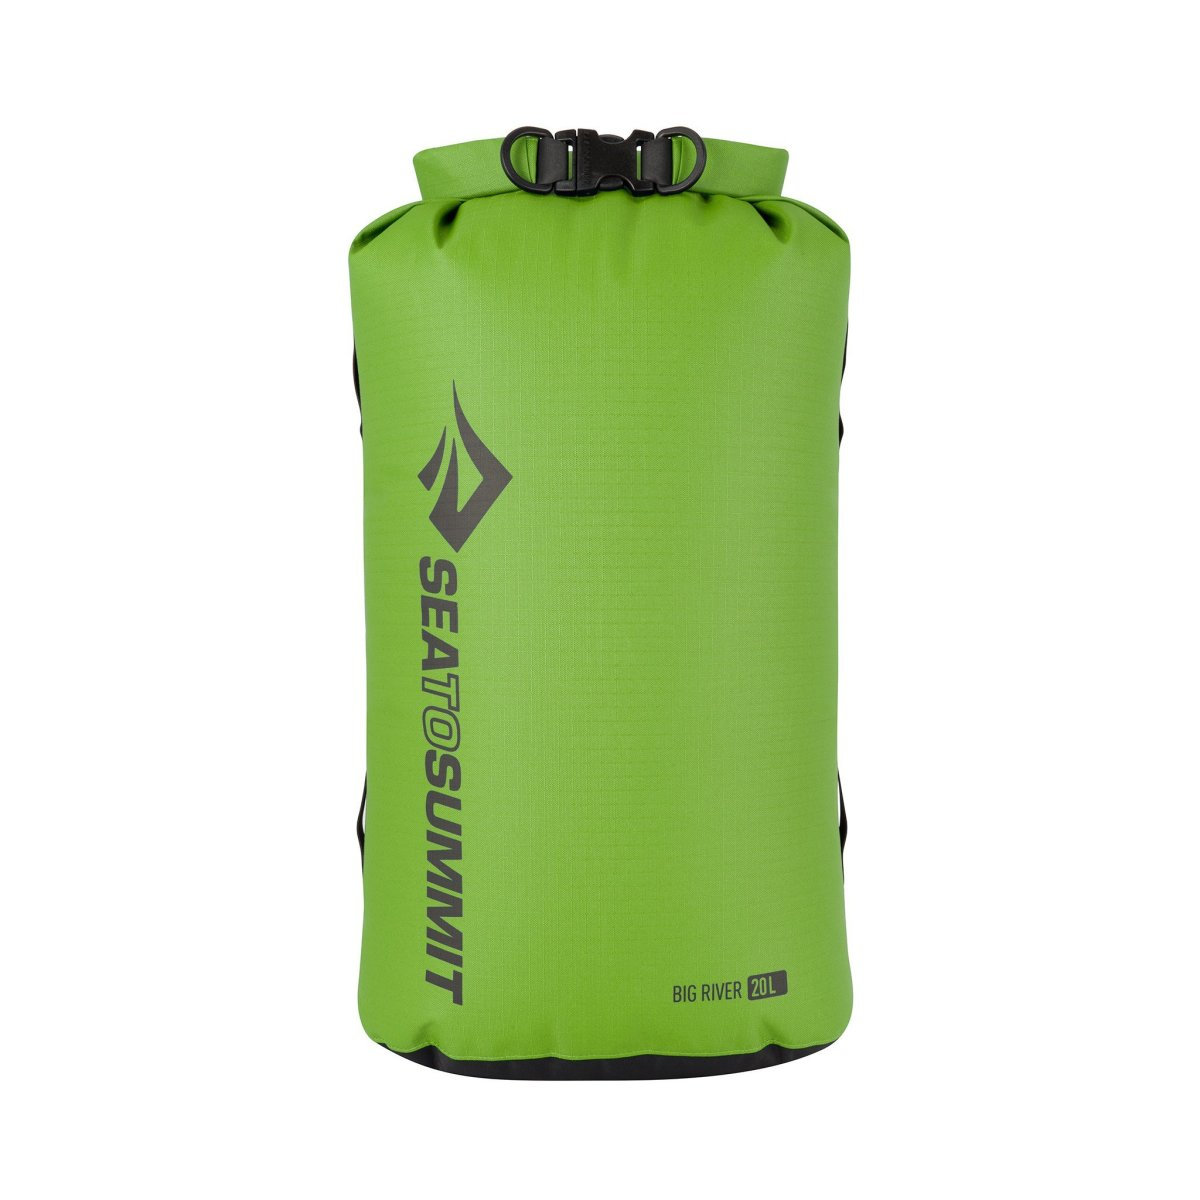 Гермочехол Sea to summit Big River Dry Bag Apple Green, 20L STS ABRDB20GN